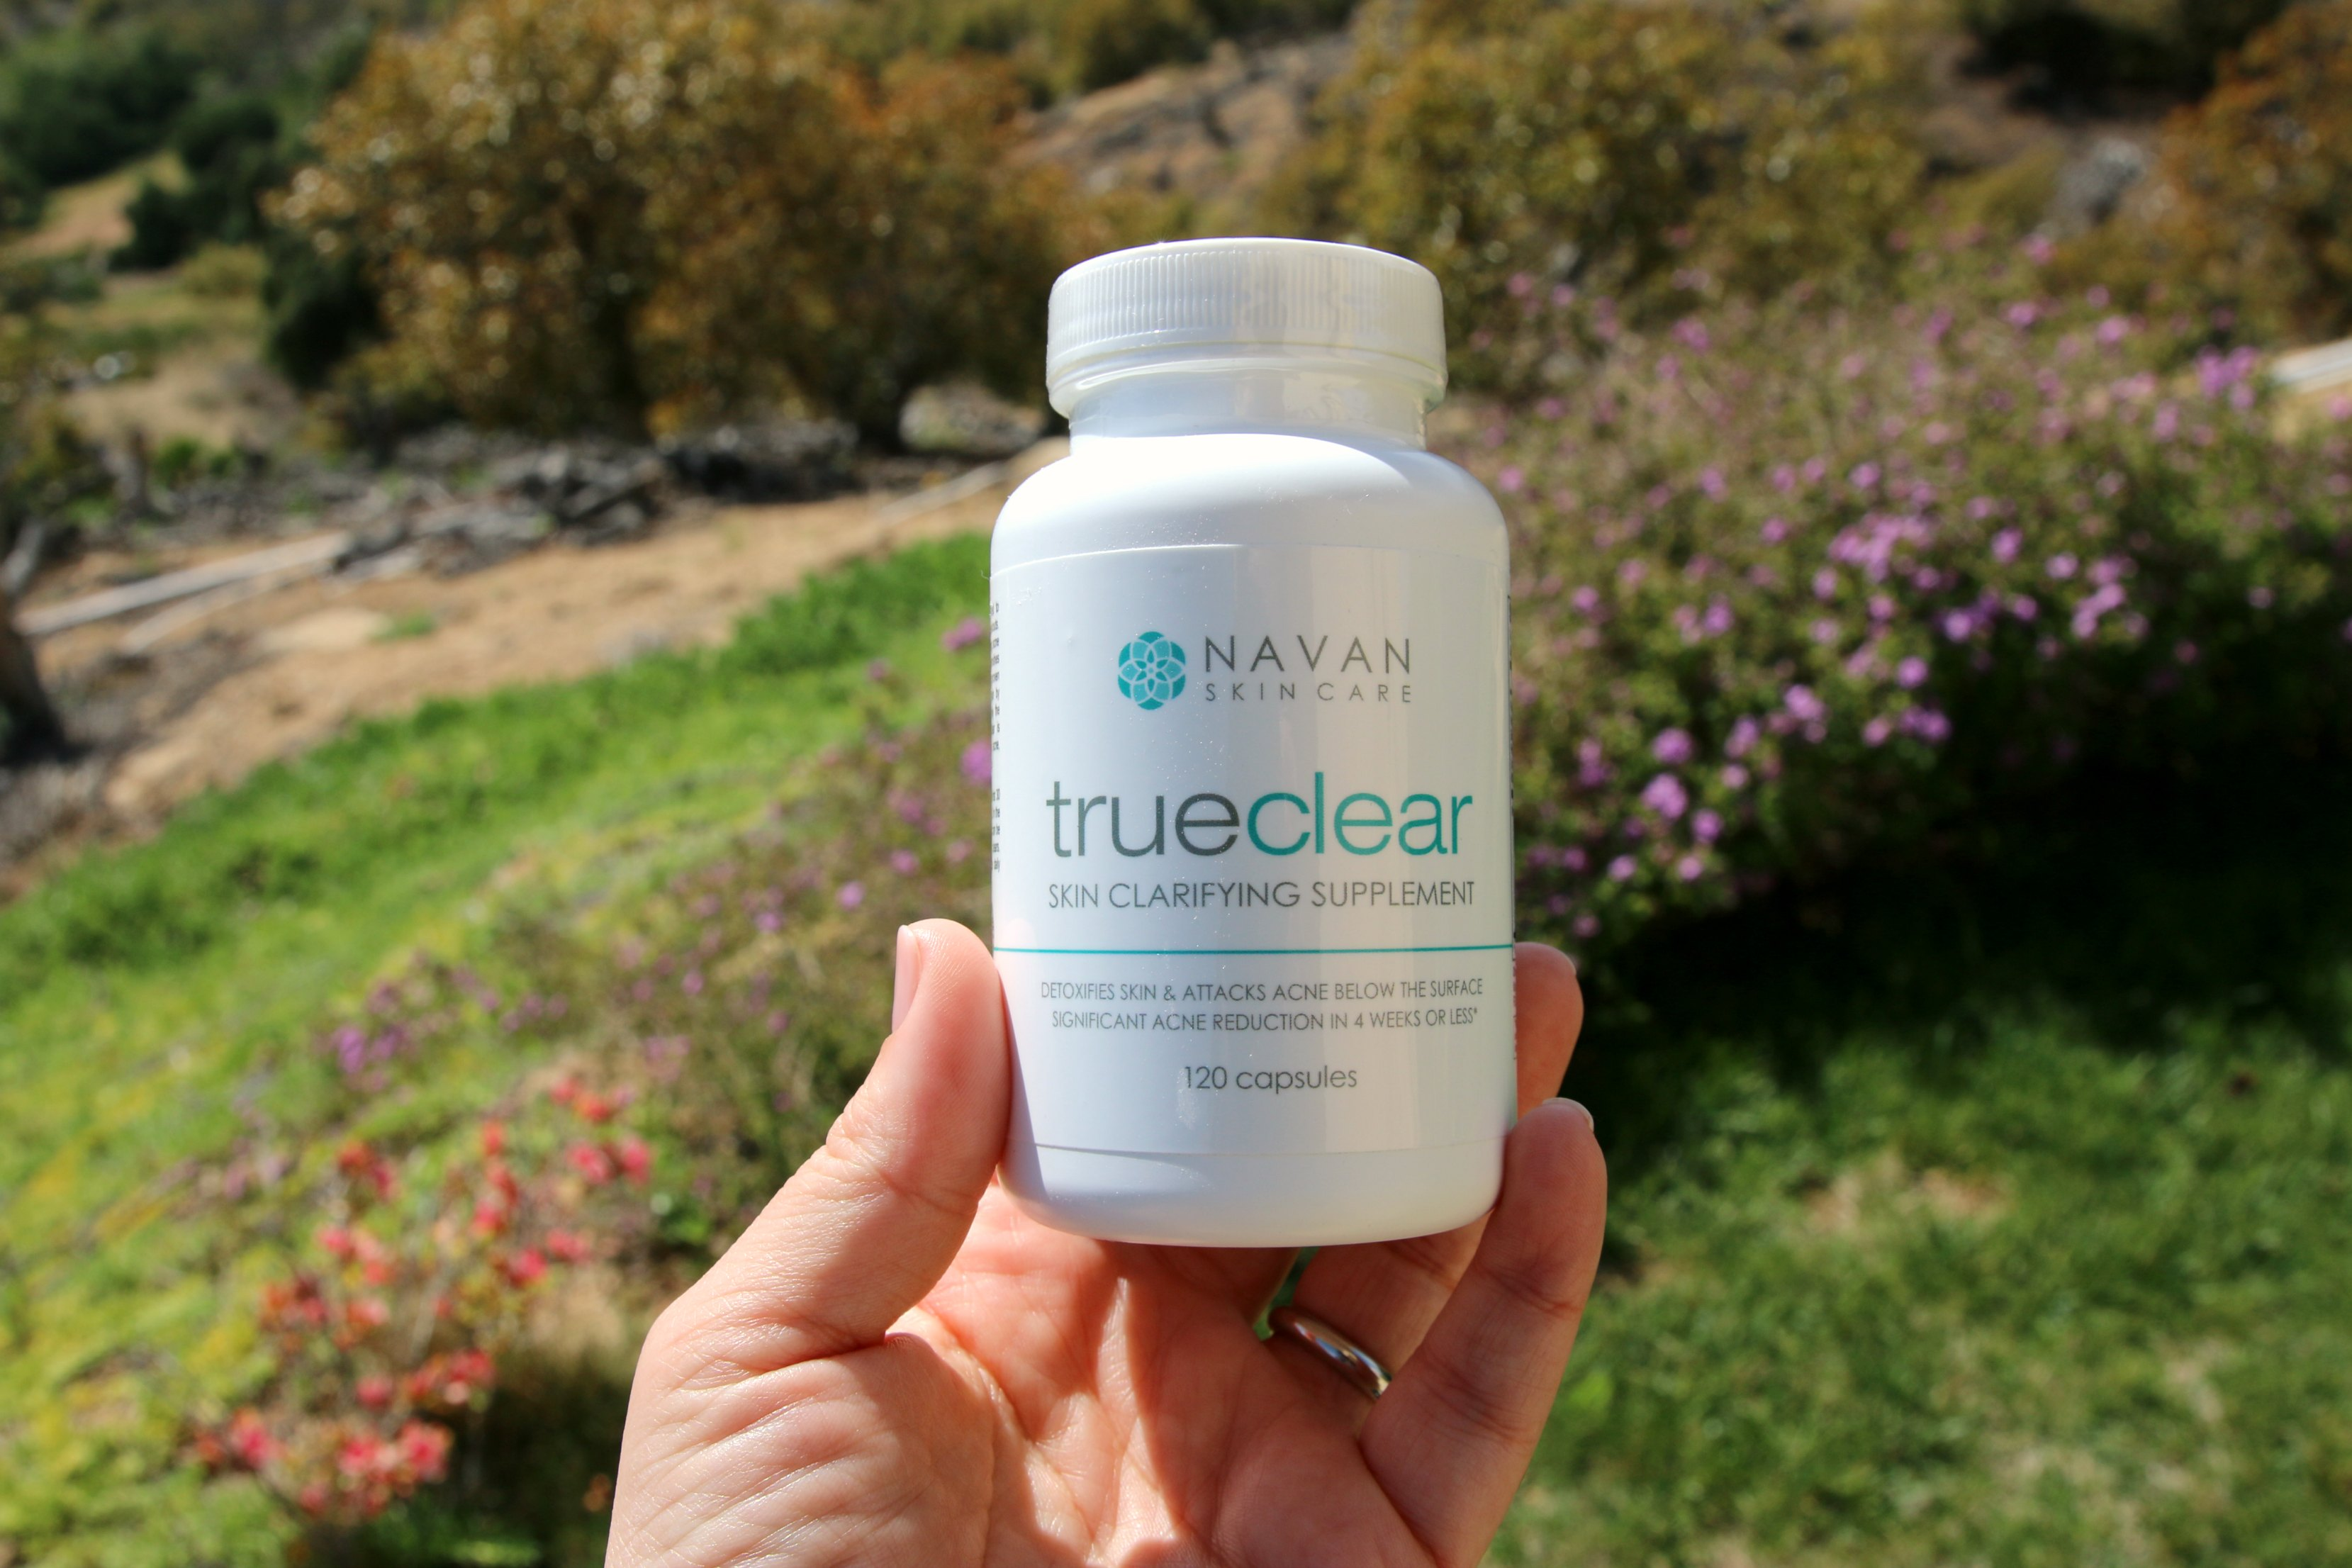 trueclear skin clarifying supplement